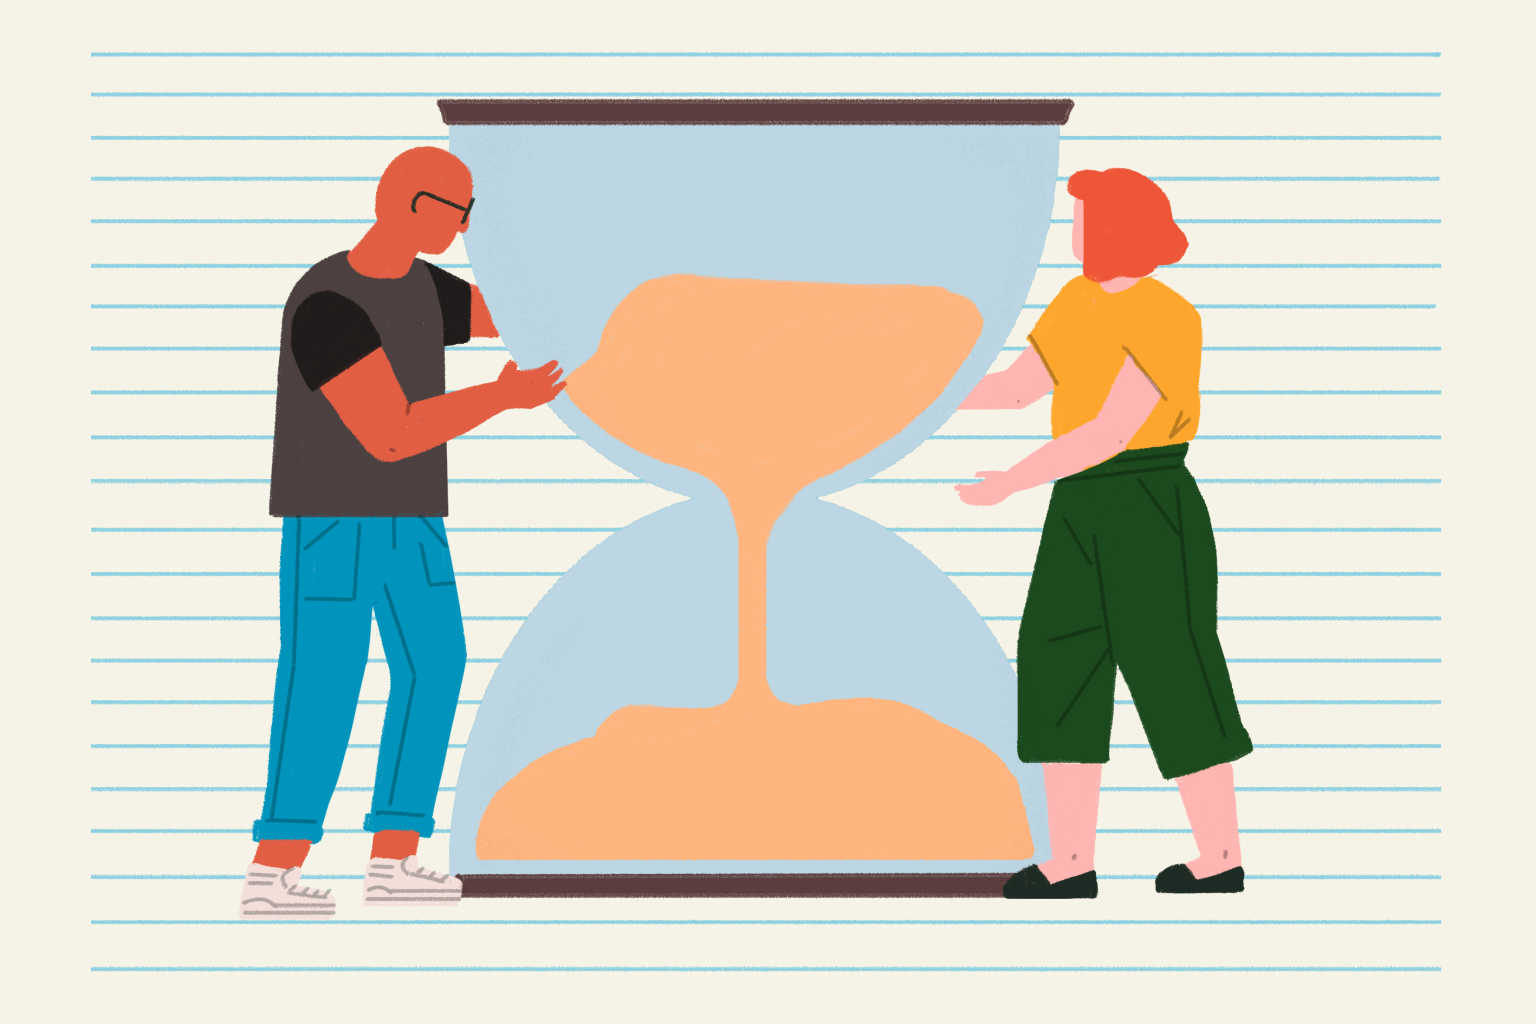 man-and-woman-with-hourglass-illustration